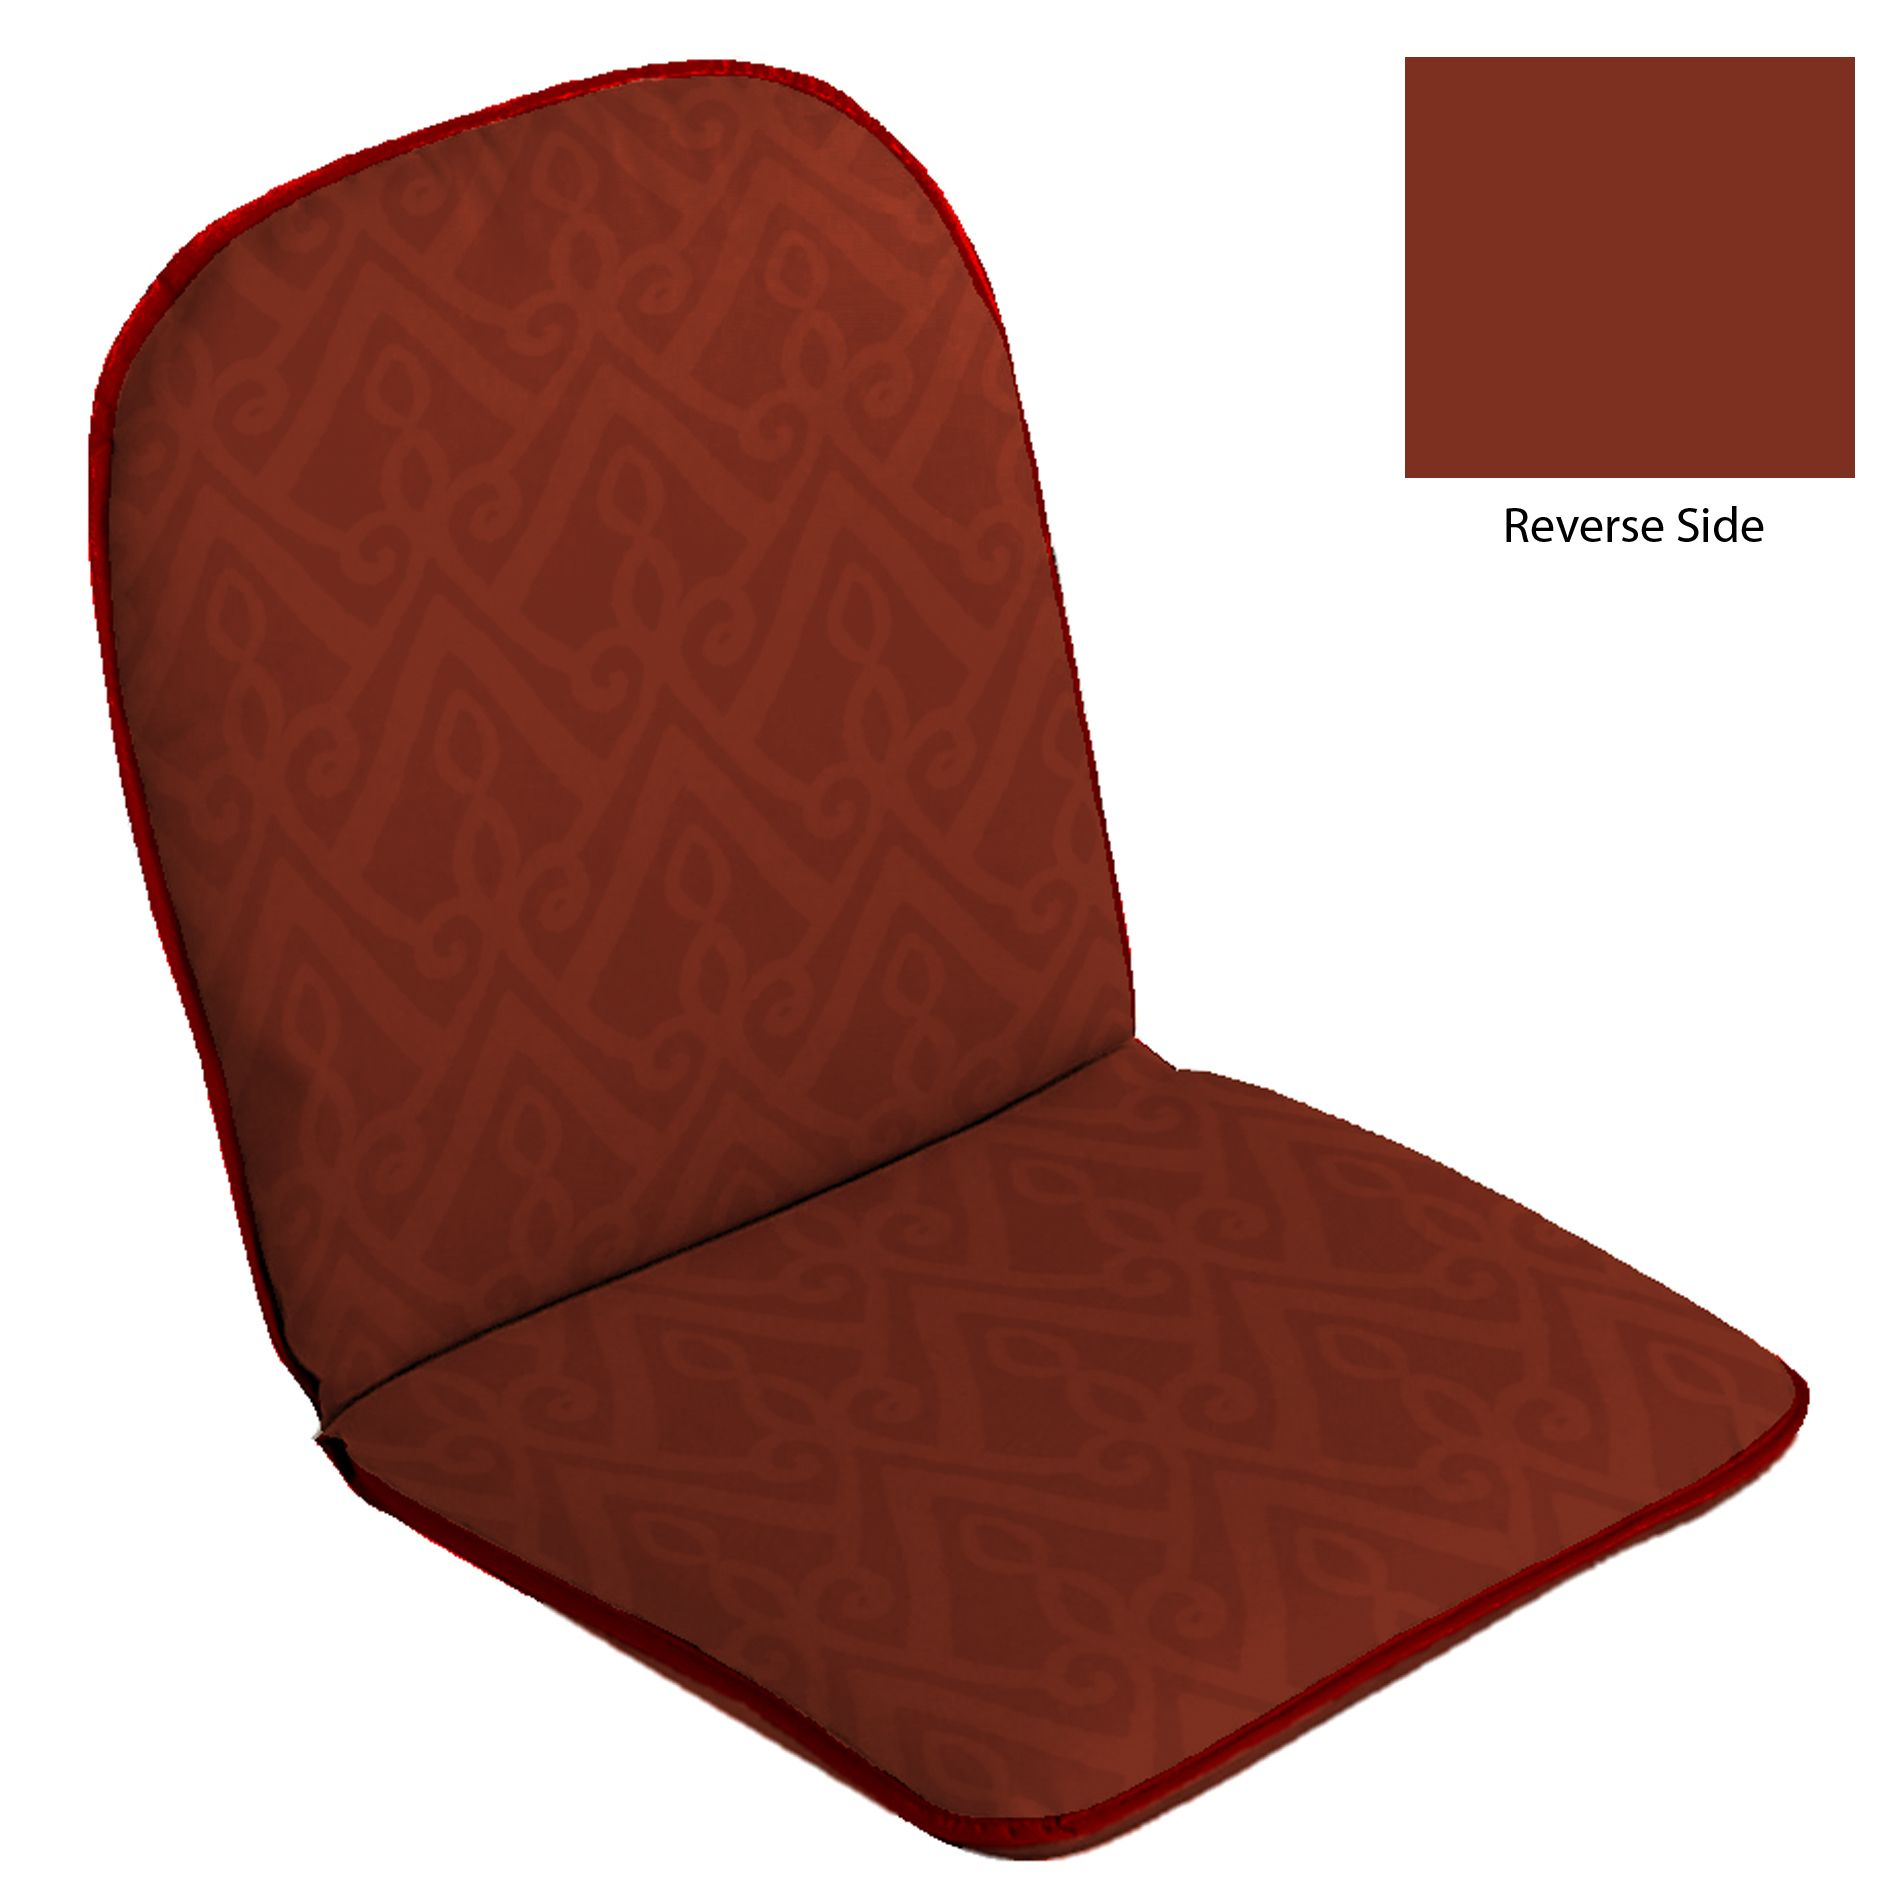 kmart chair cushions cost of wheel chairs essential garden patio hinged cushion christopher